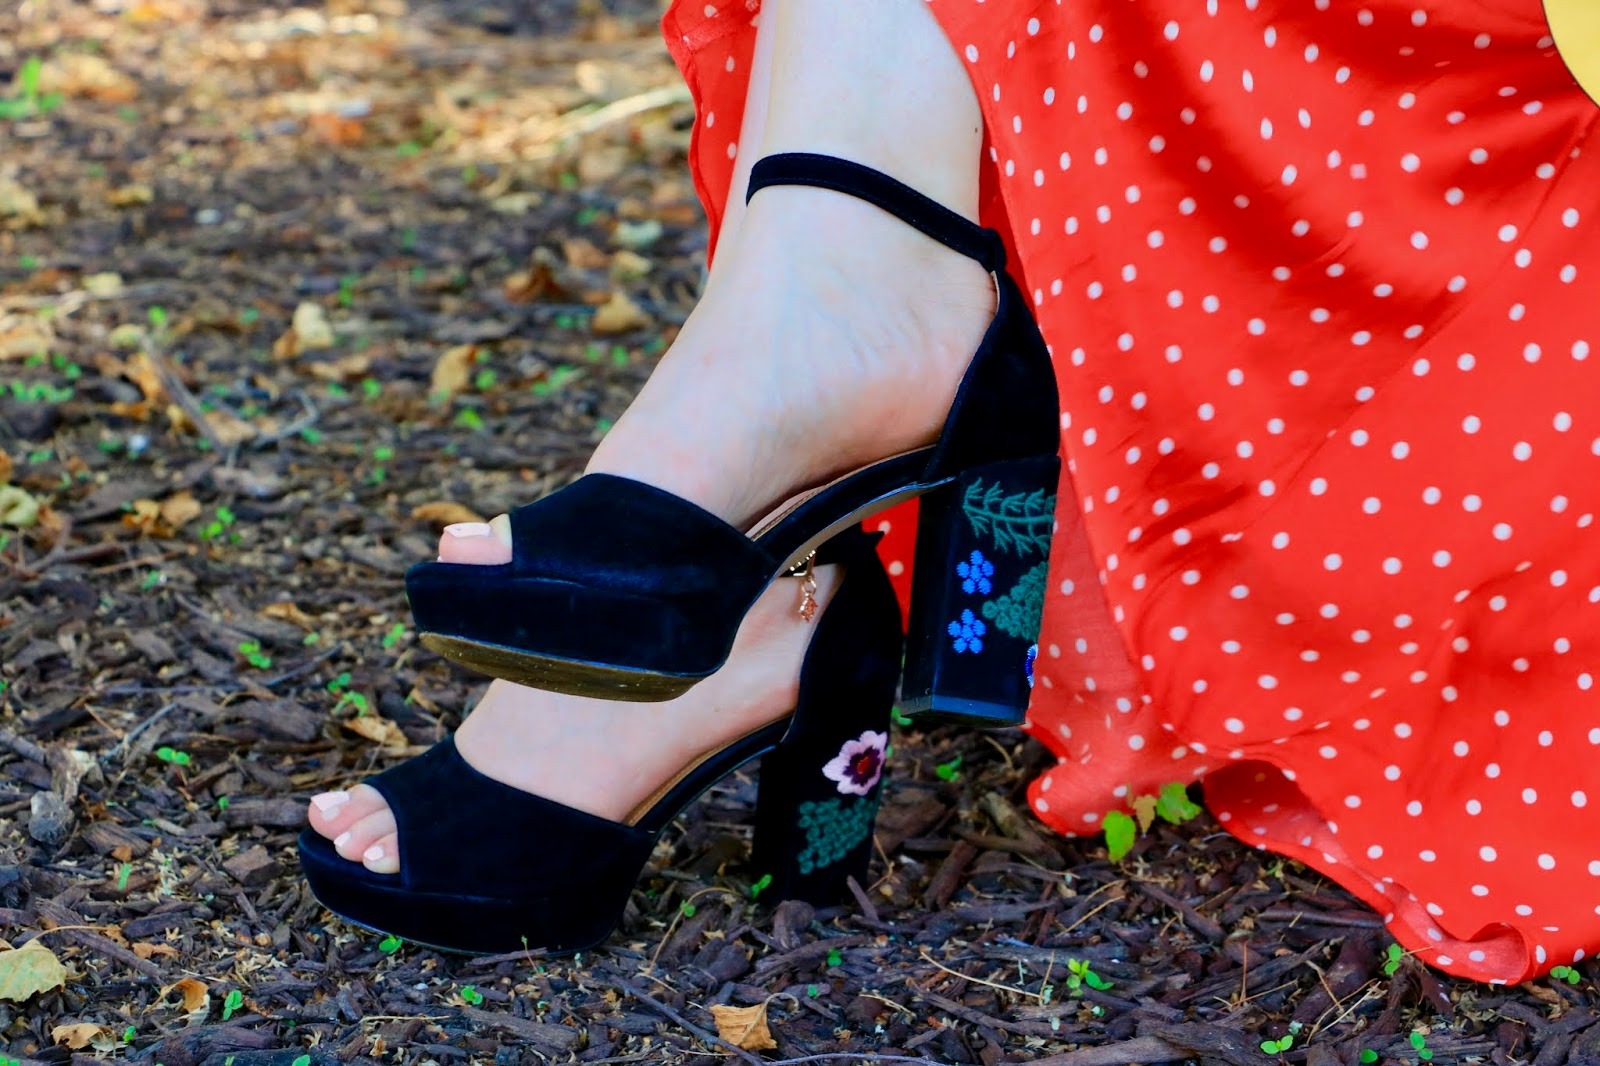 Nyc fashion blogger Kathleen Harper wearing black platform embroidered heels by Nanette Lepore.